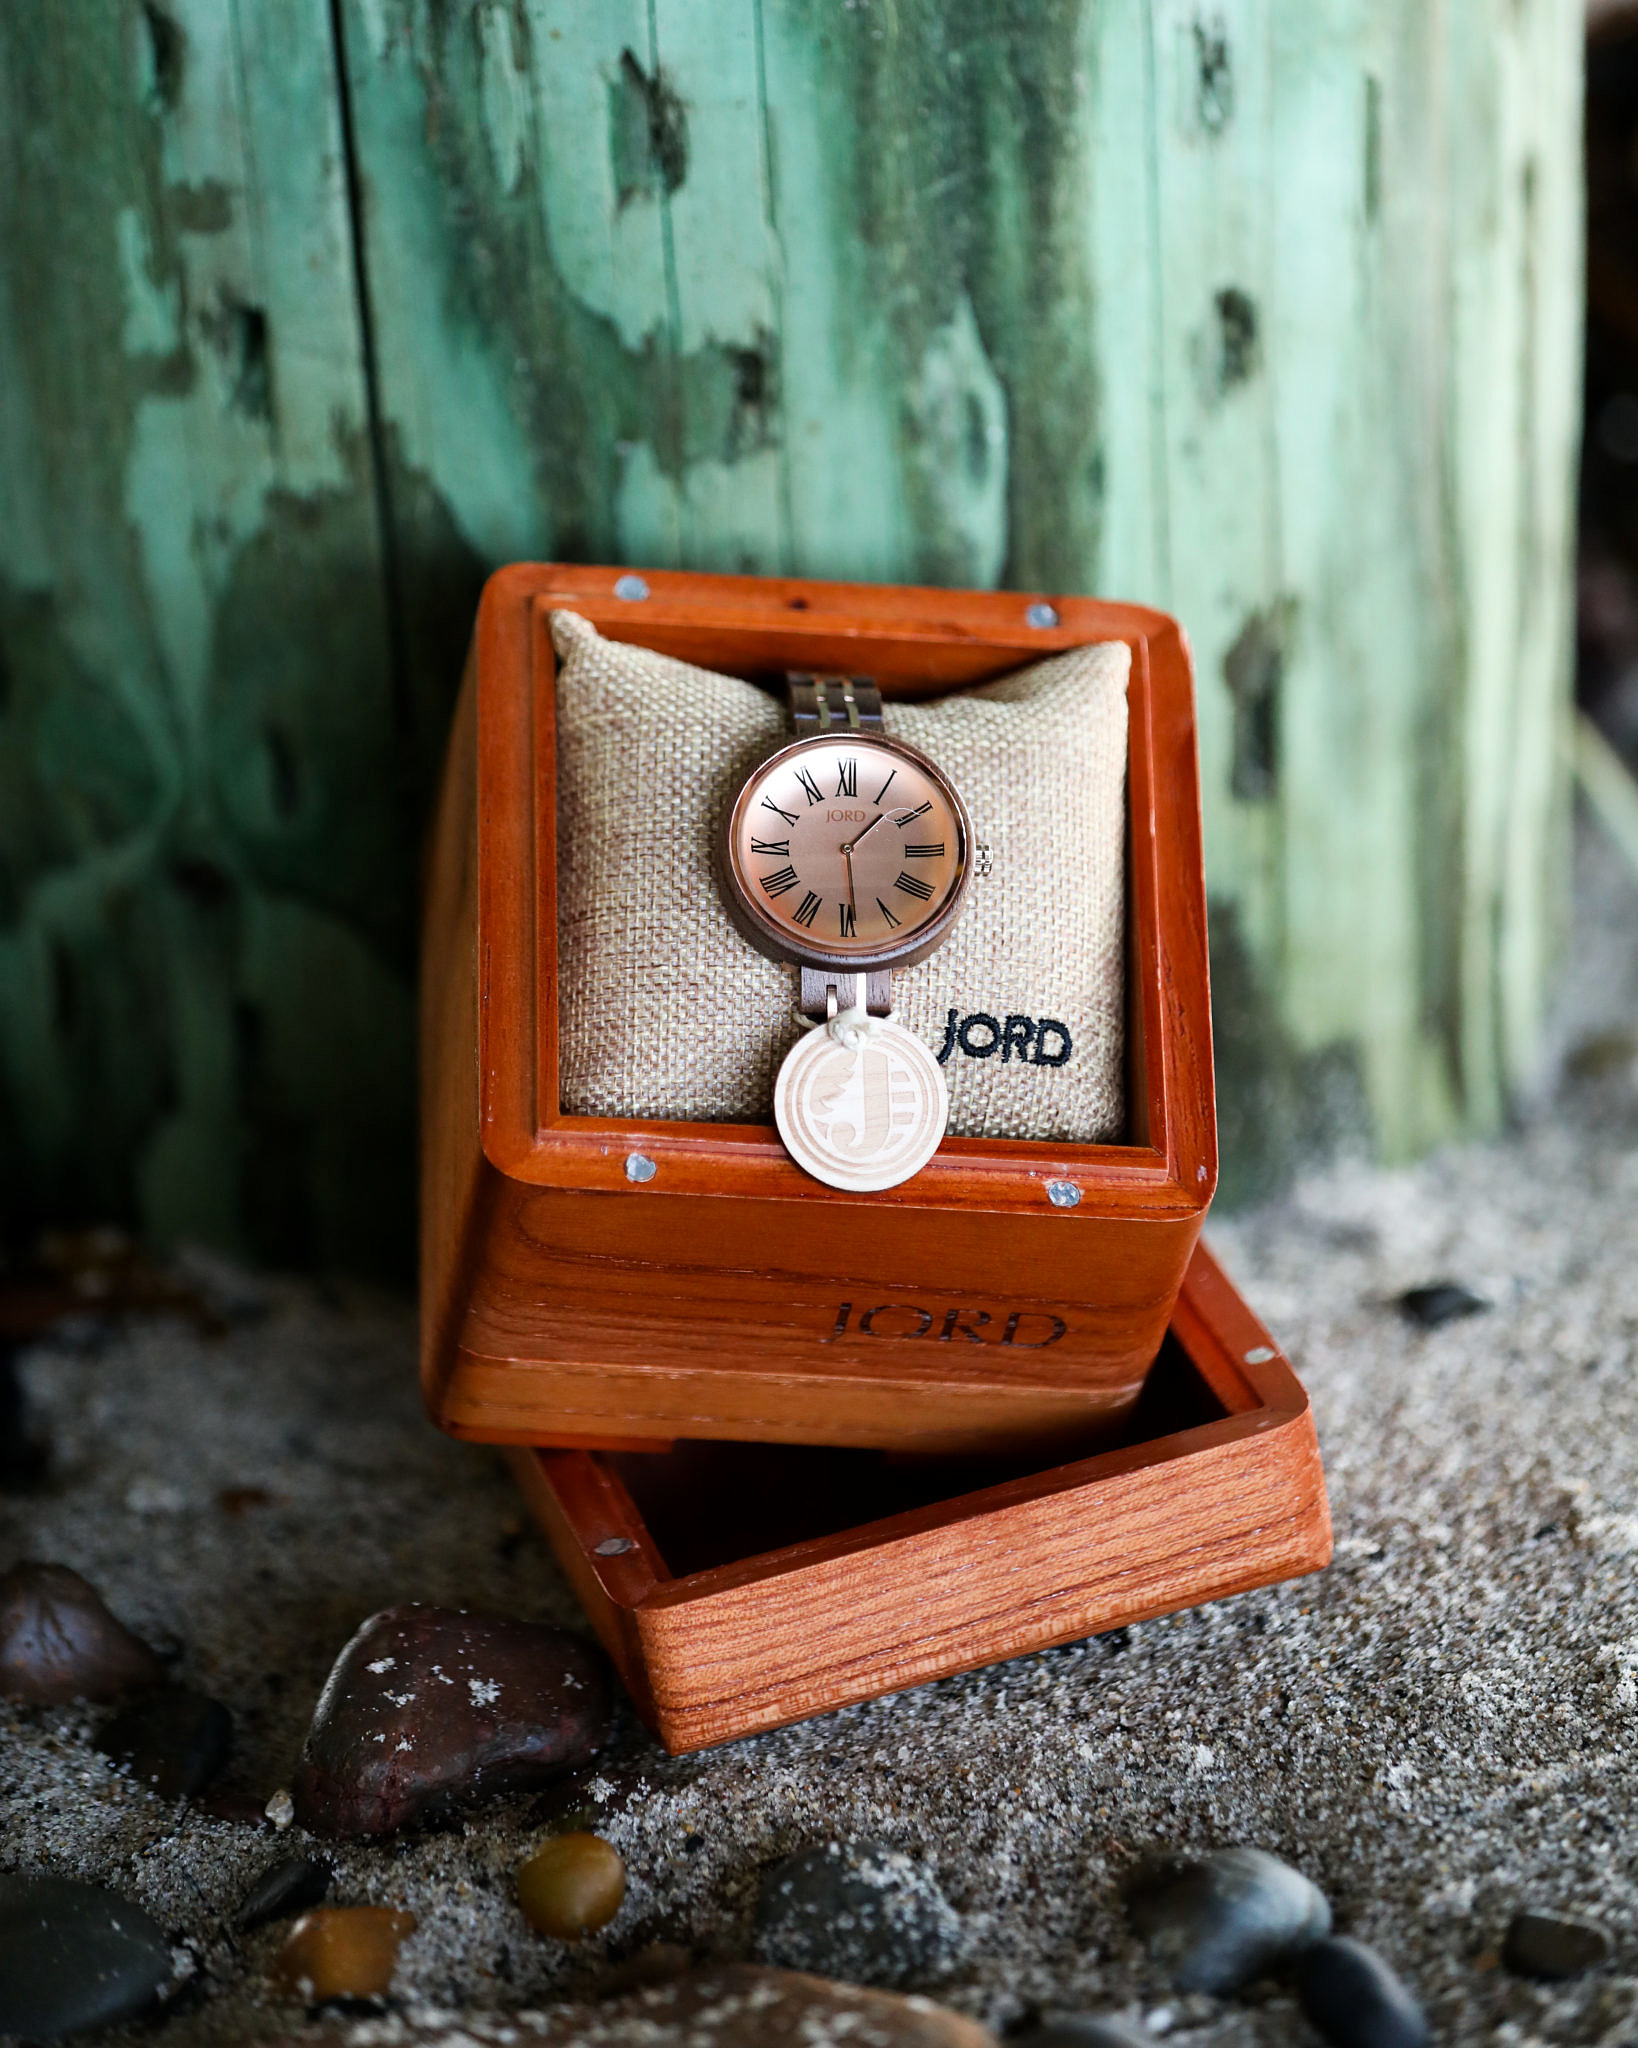 Wooden Watches: A Unique Summer Accessory + Contest Giveaway